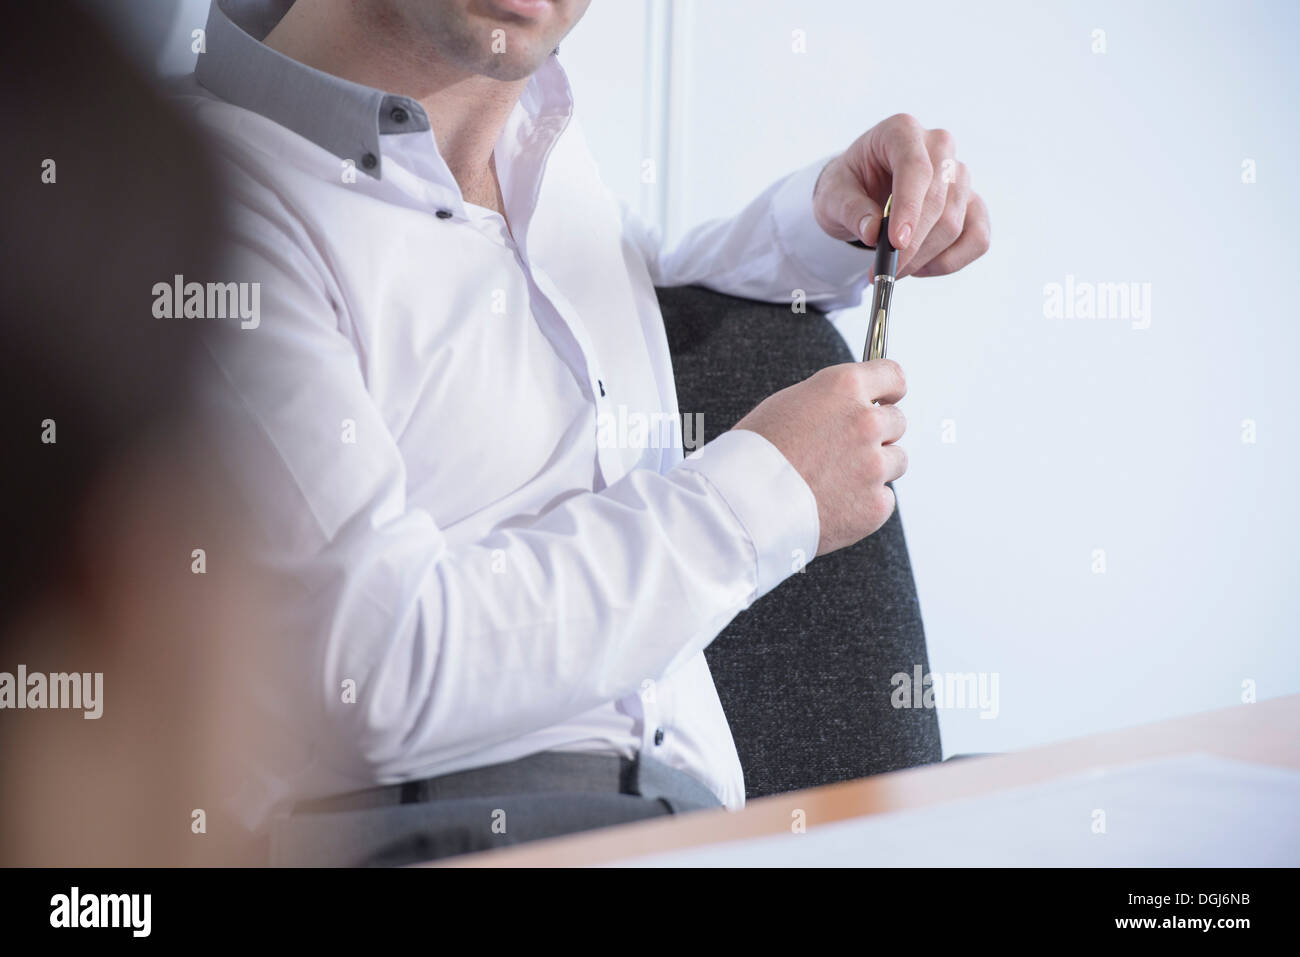 Man holding pen in business meeting, close up - Stock Image